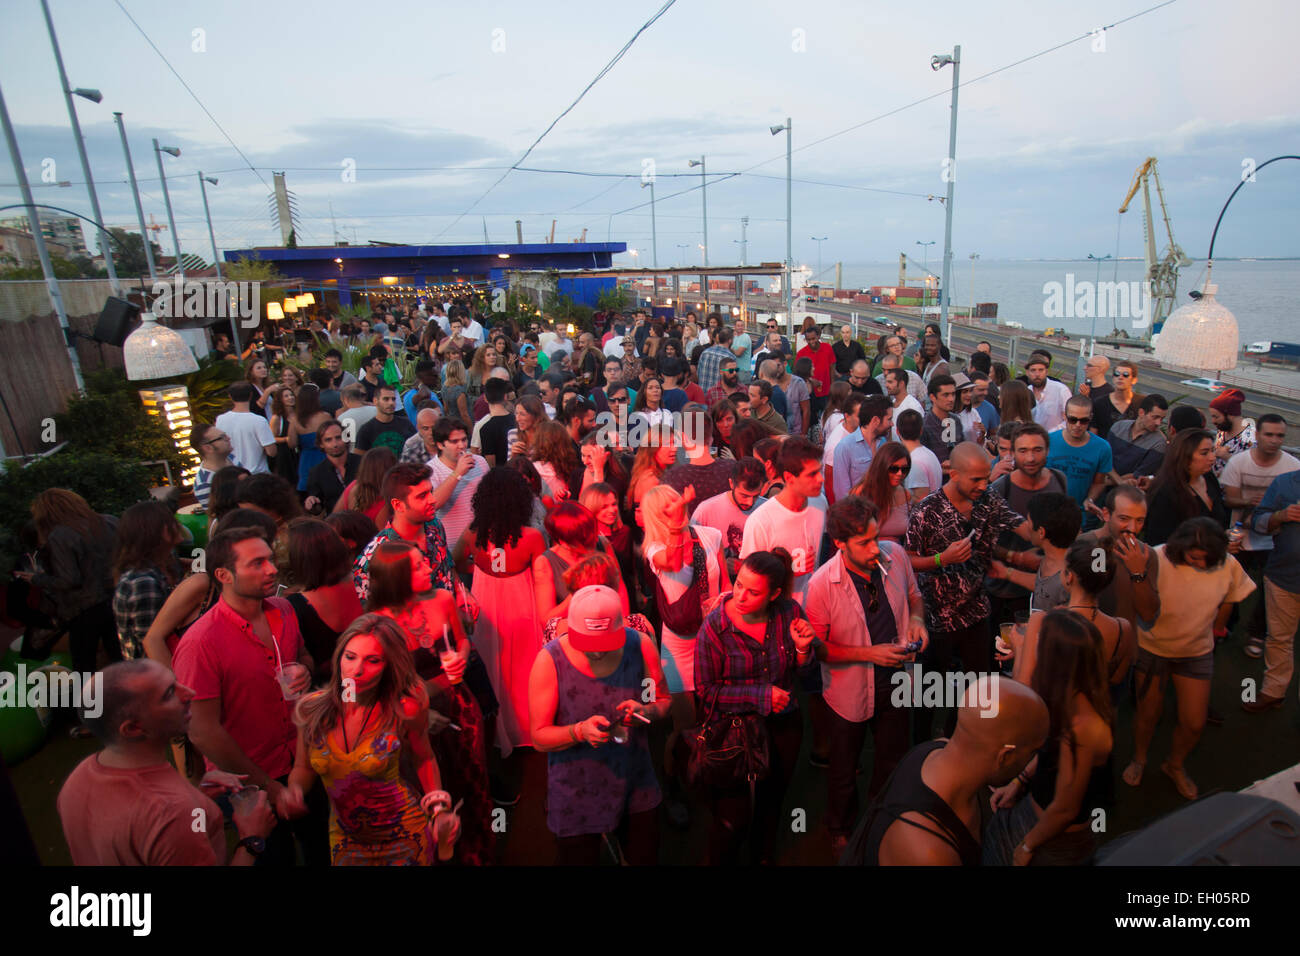 People dancing at a DJ party at Clube Ferroviario (Railway Club), in Lisbon, Portugal. - Stock Image